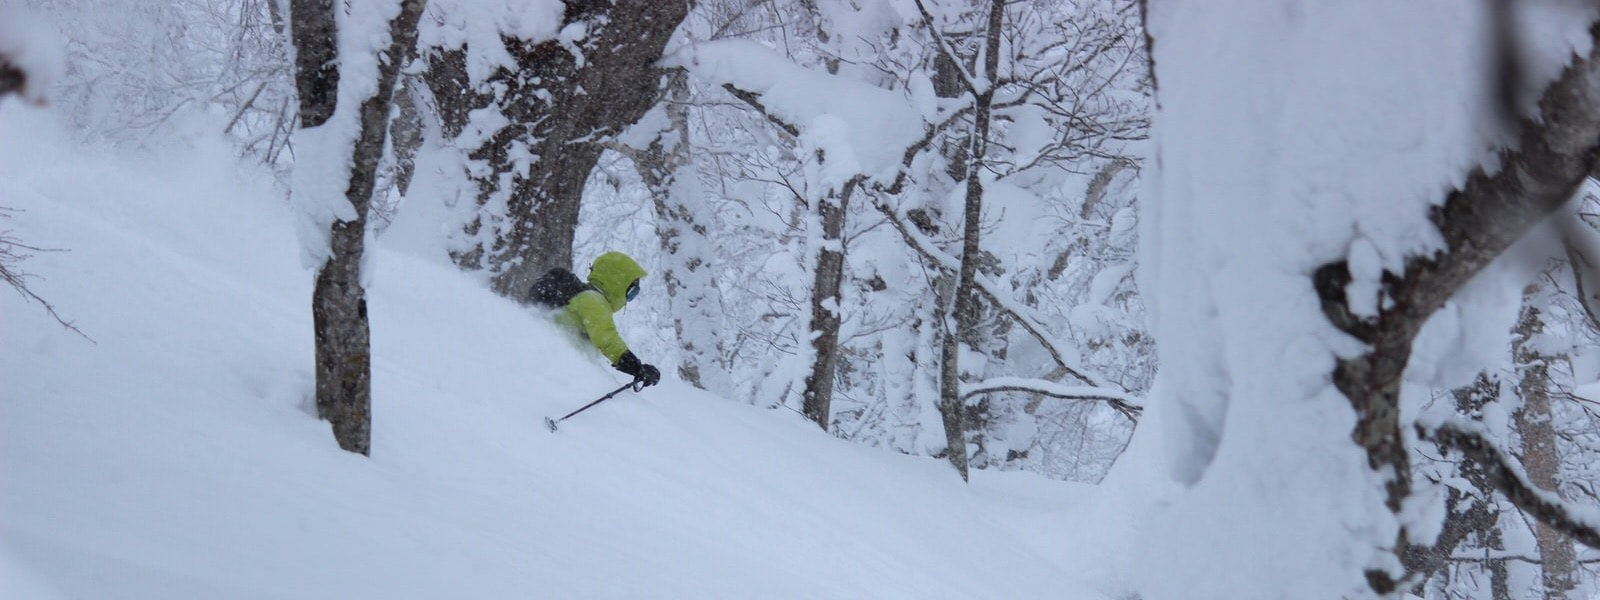 samurai powder skiing tour in japan